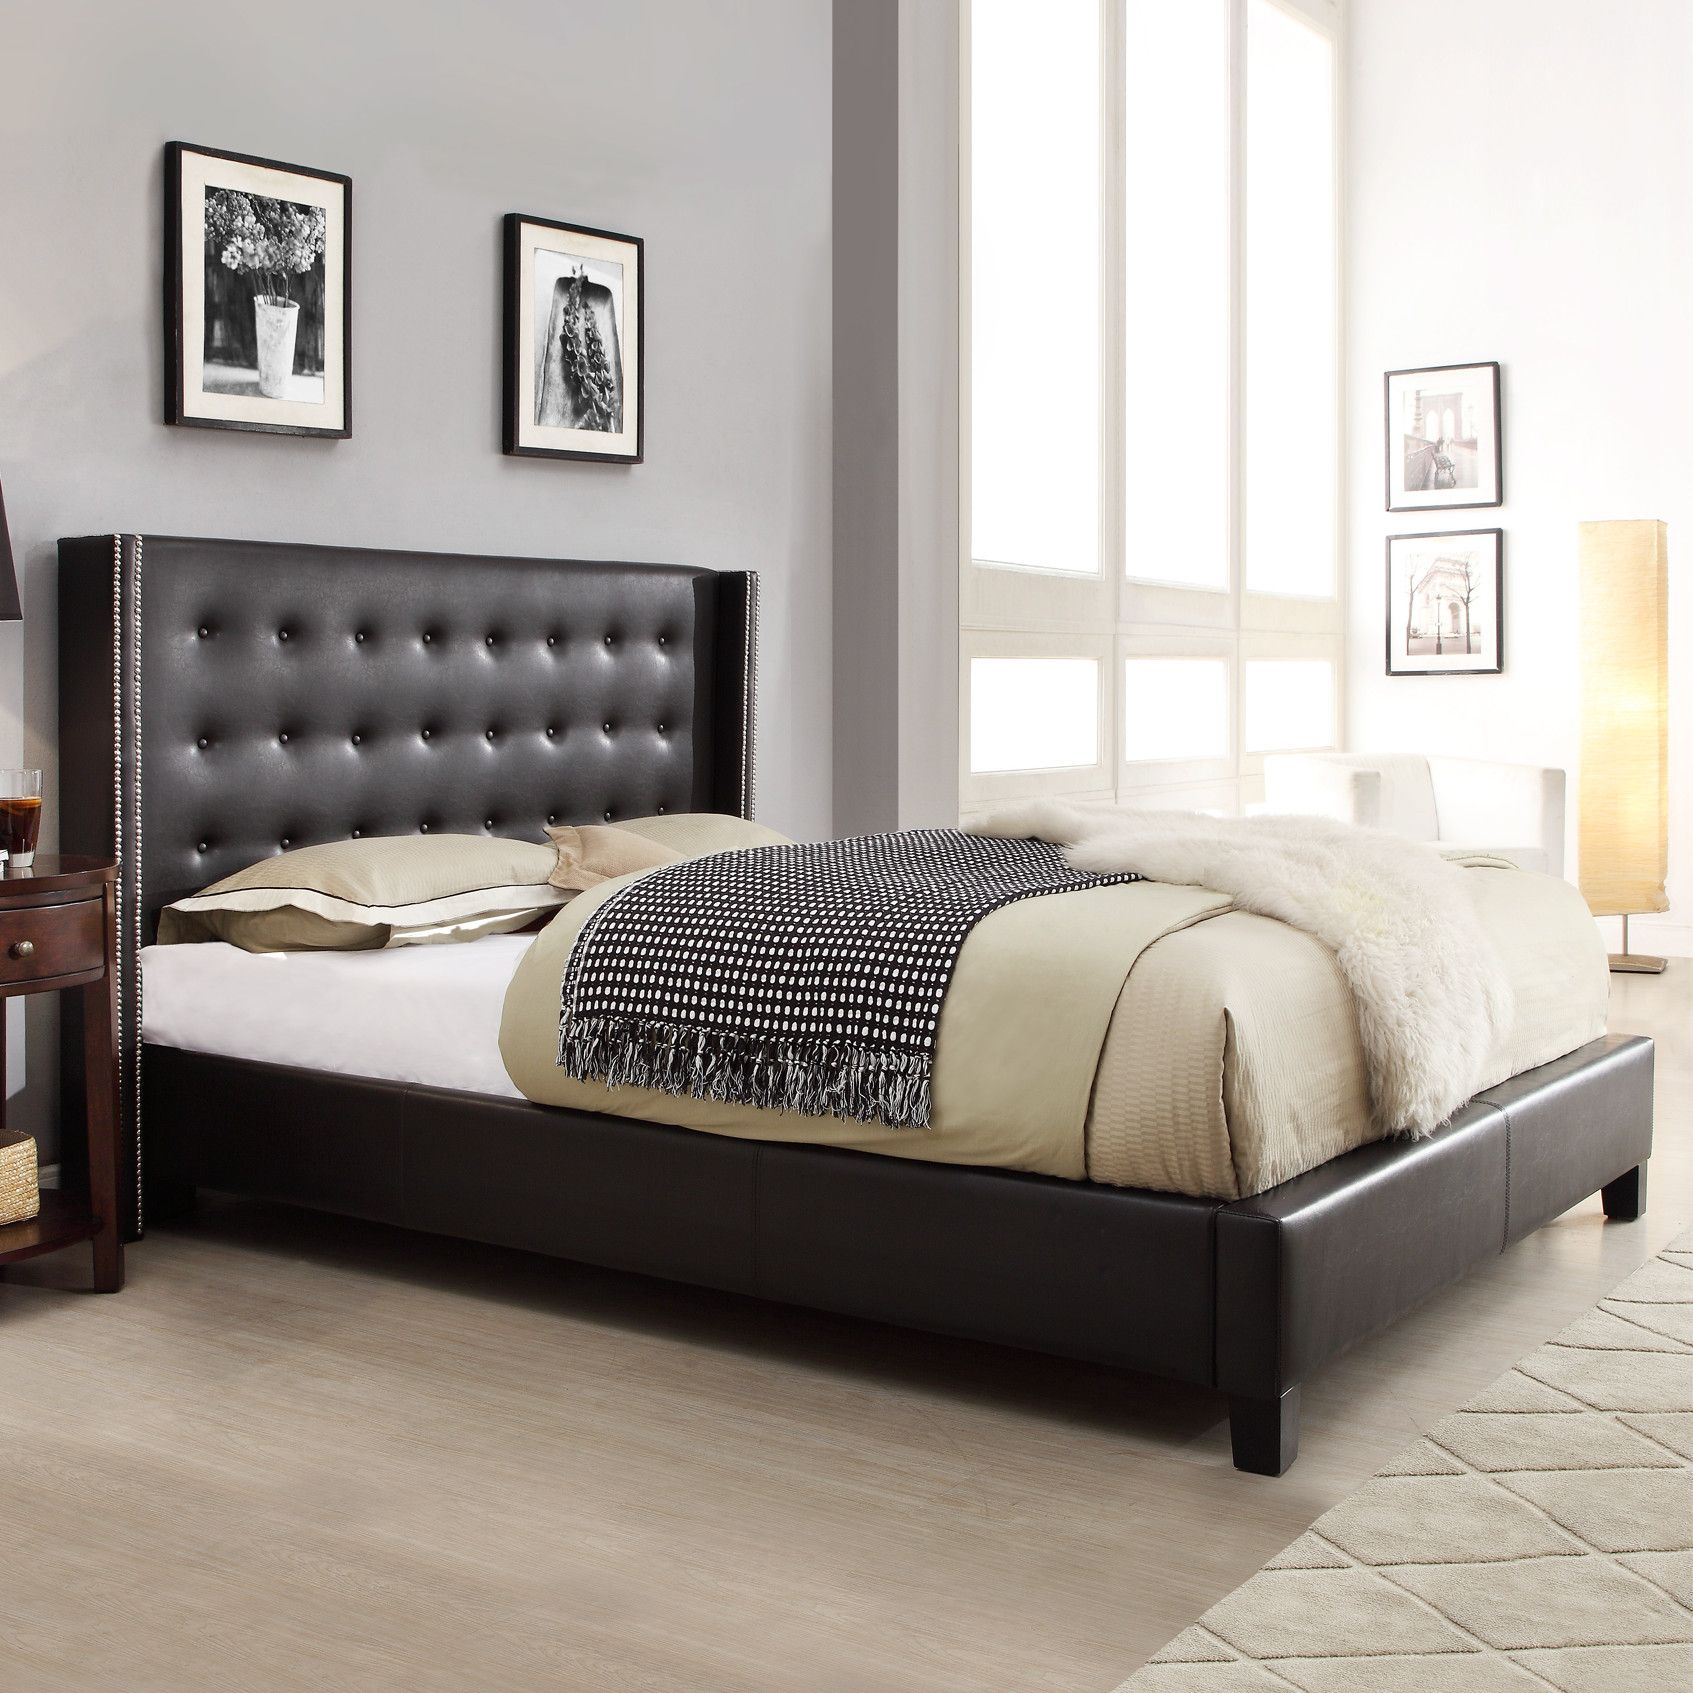 Mackenna Upholstered Bed Black bedding, Furniture